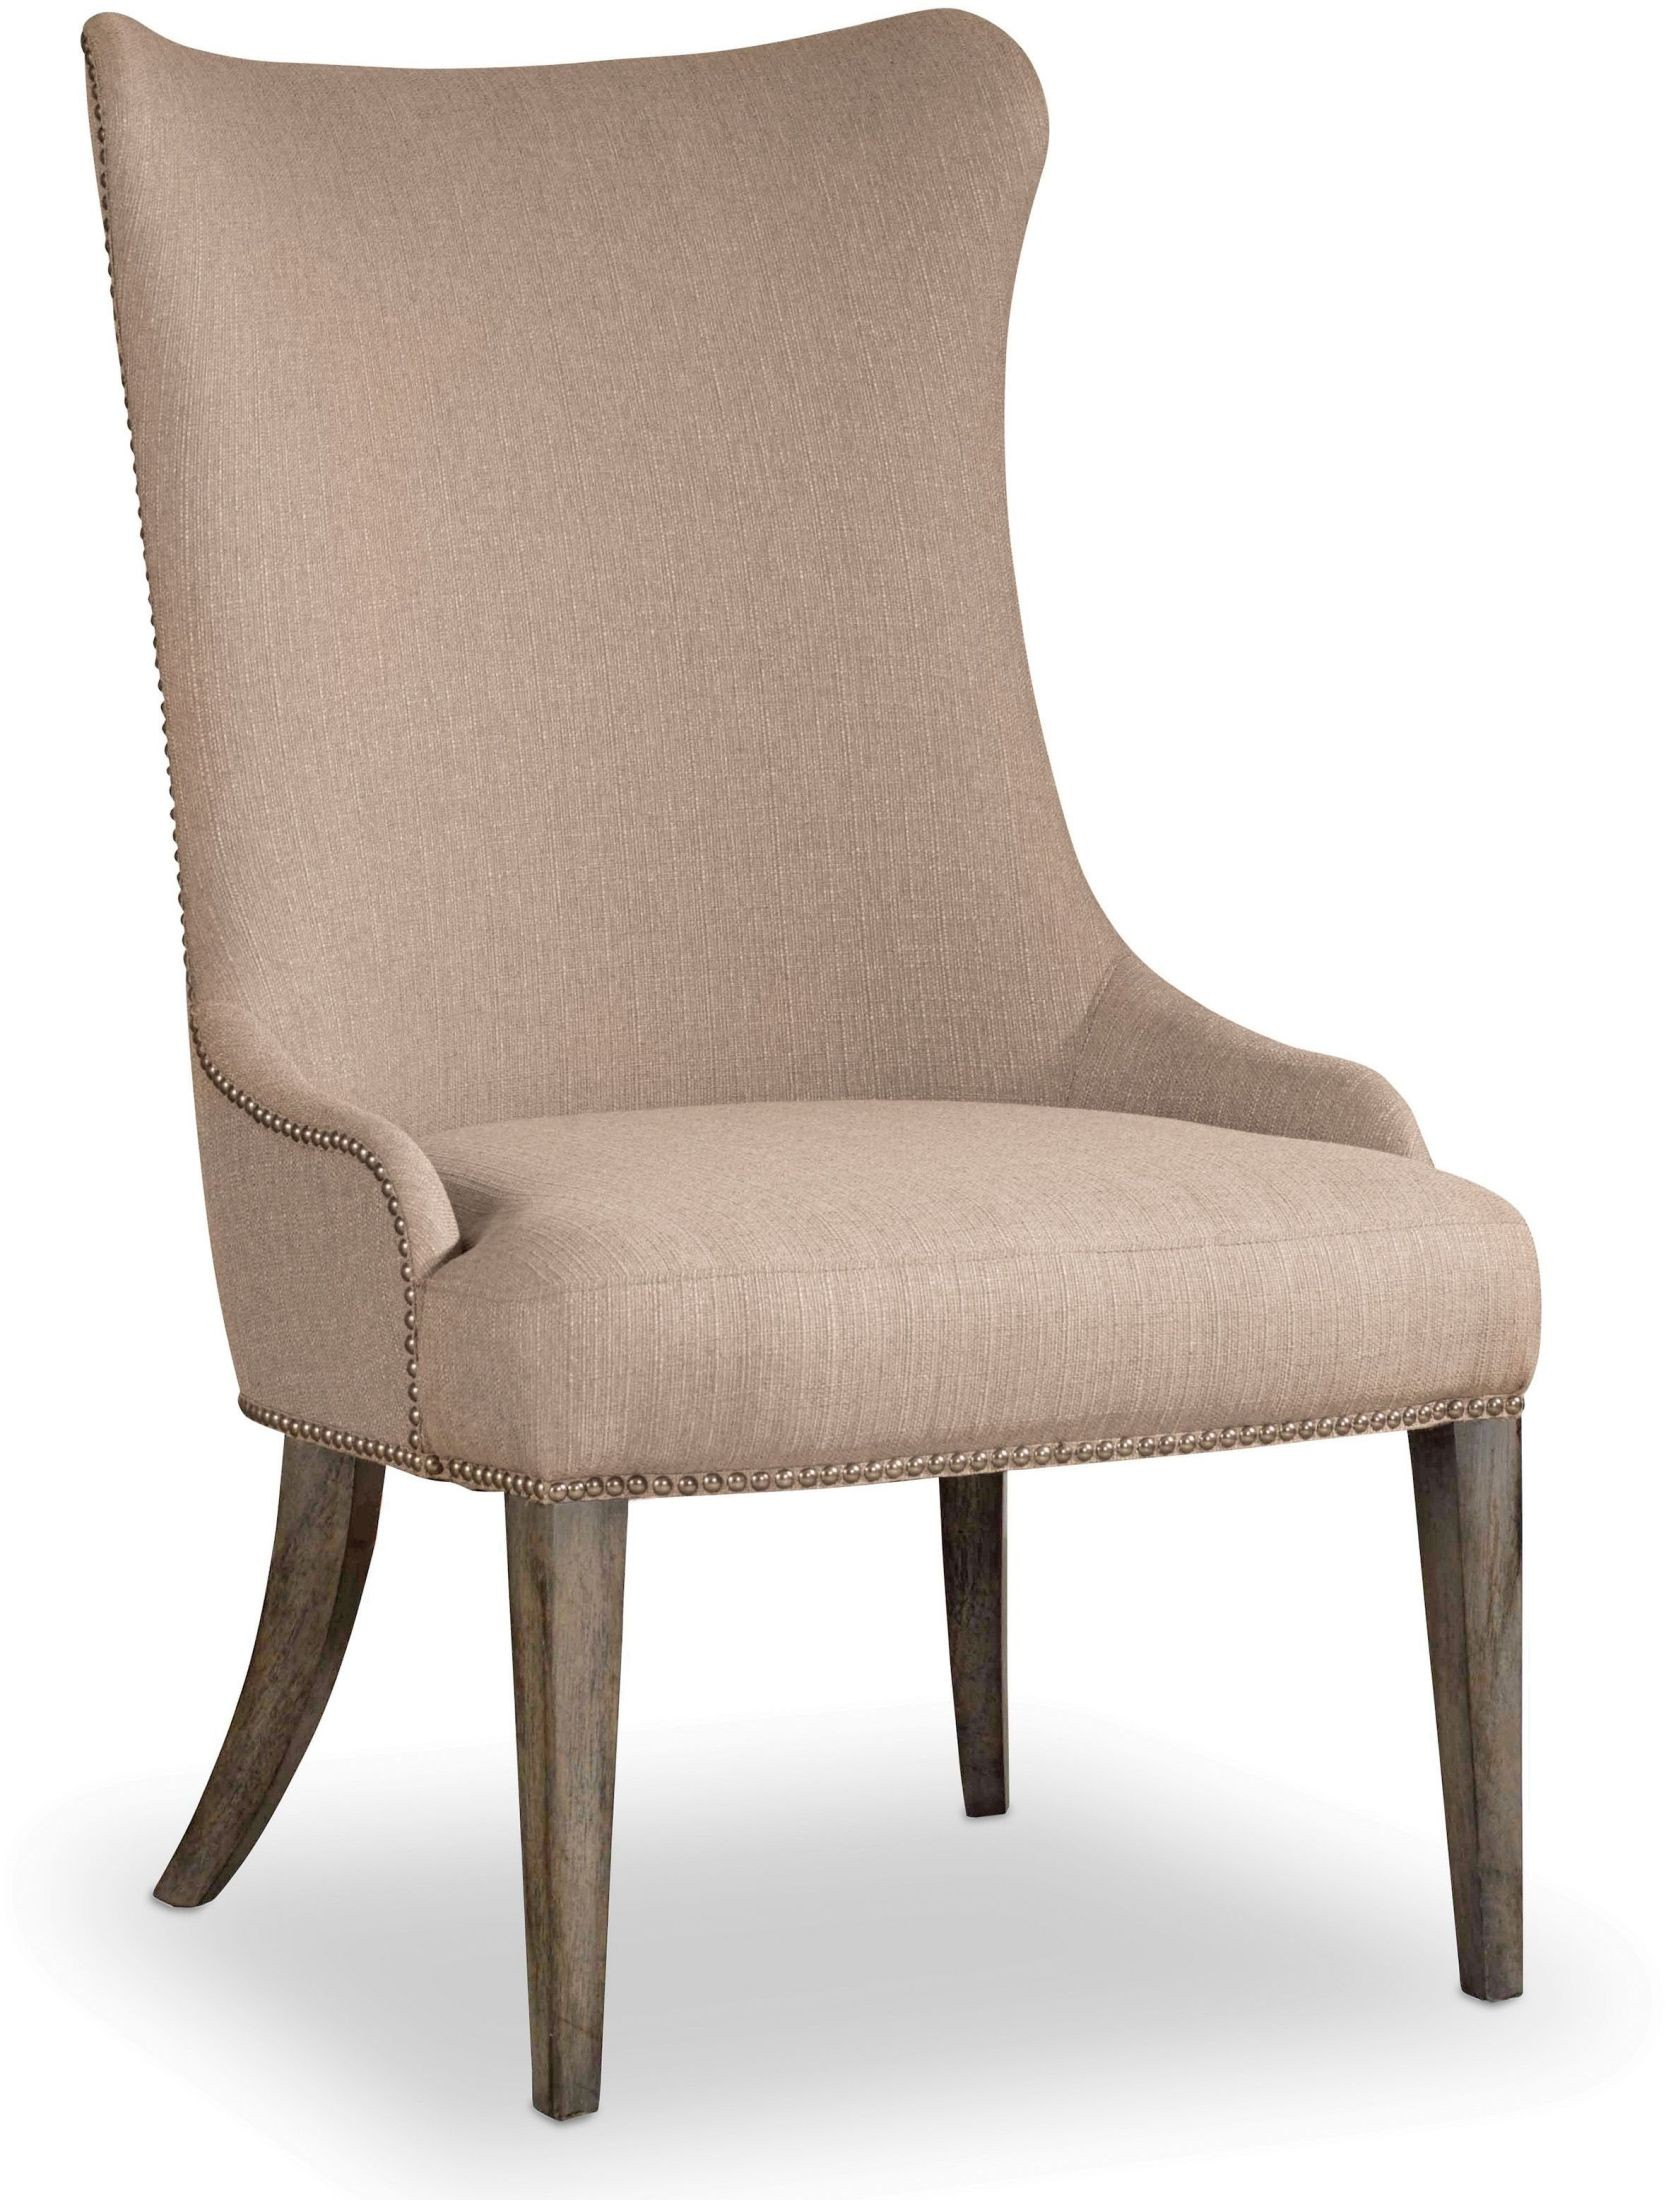 beige dining chairs patio chair cushions johannesburg true vintage upholstered set of 2 5702